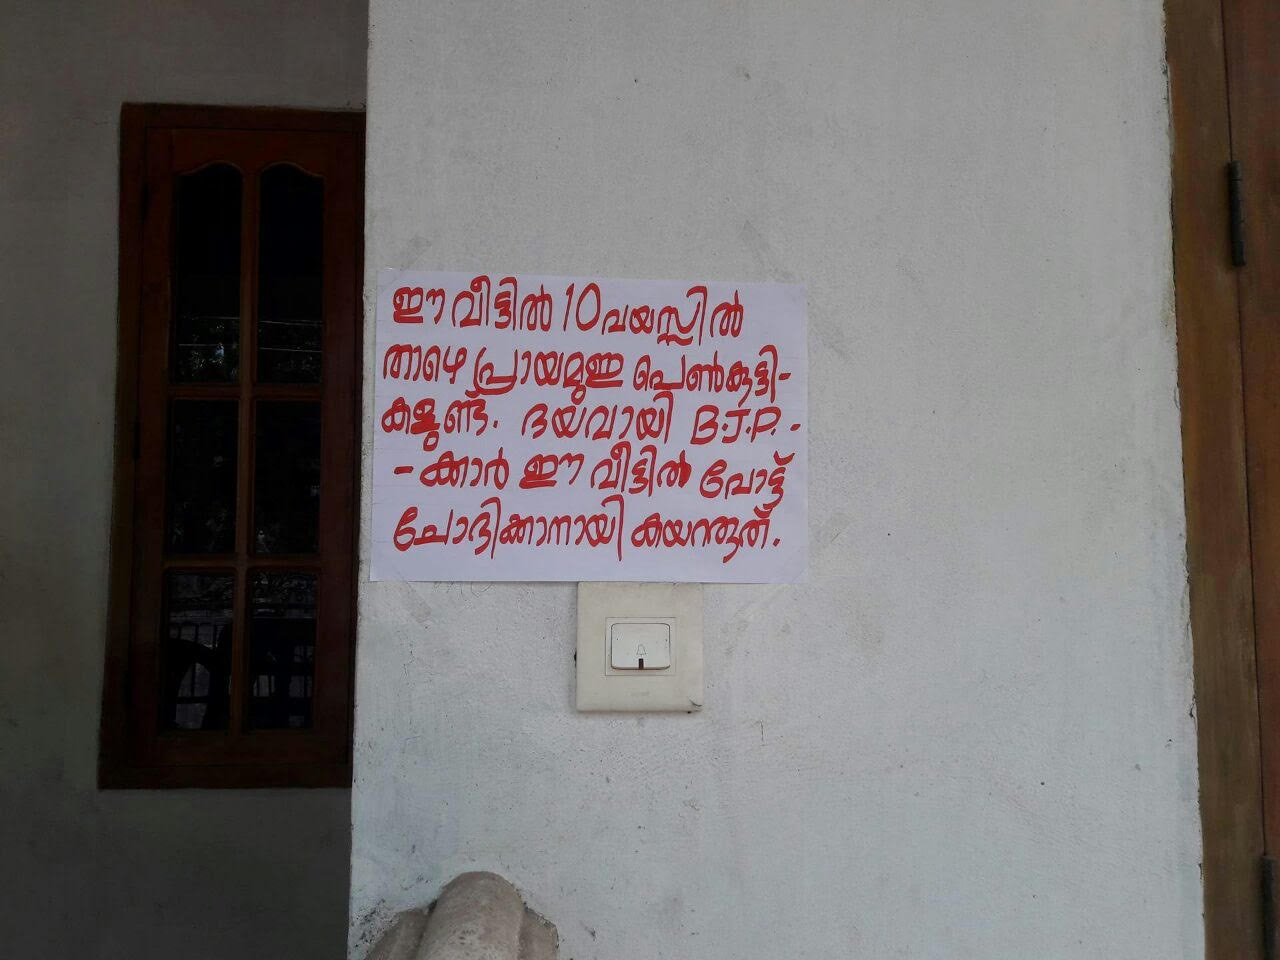 """The poster outside a home states, """"In this house, there is a girl younger than 10. BJP workers seeking votes, please do not enter this house"""""""